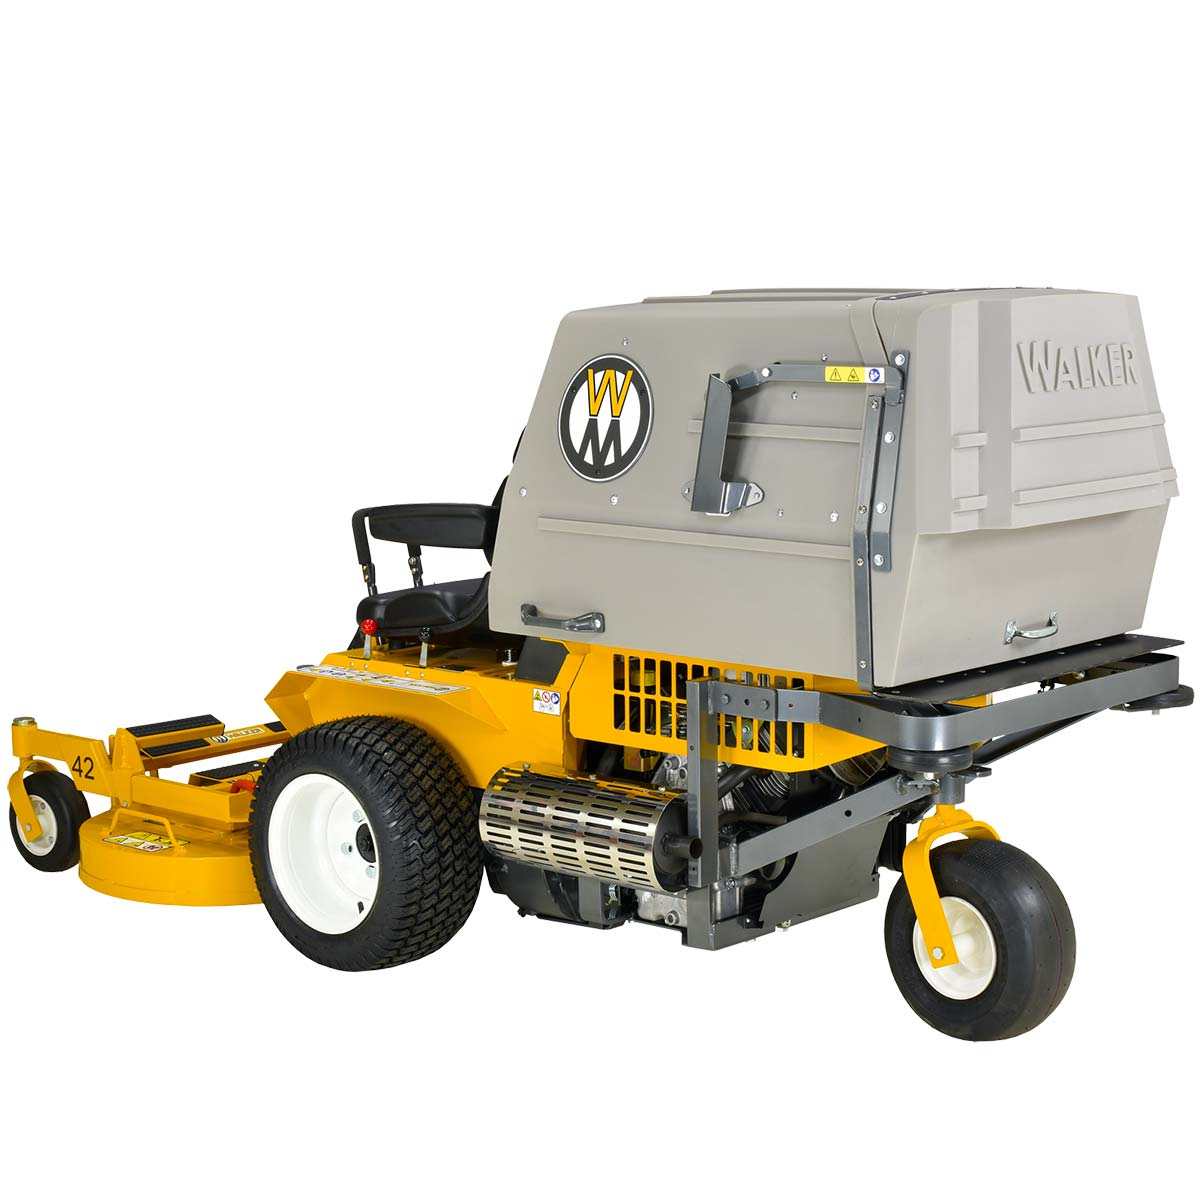 Large rear collection bin for MC19 Walker Mower